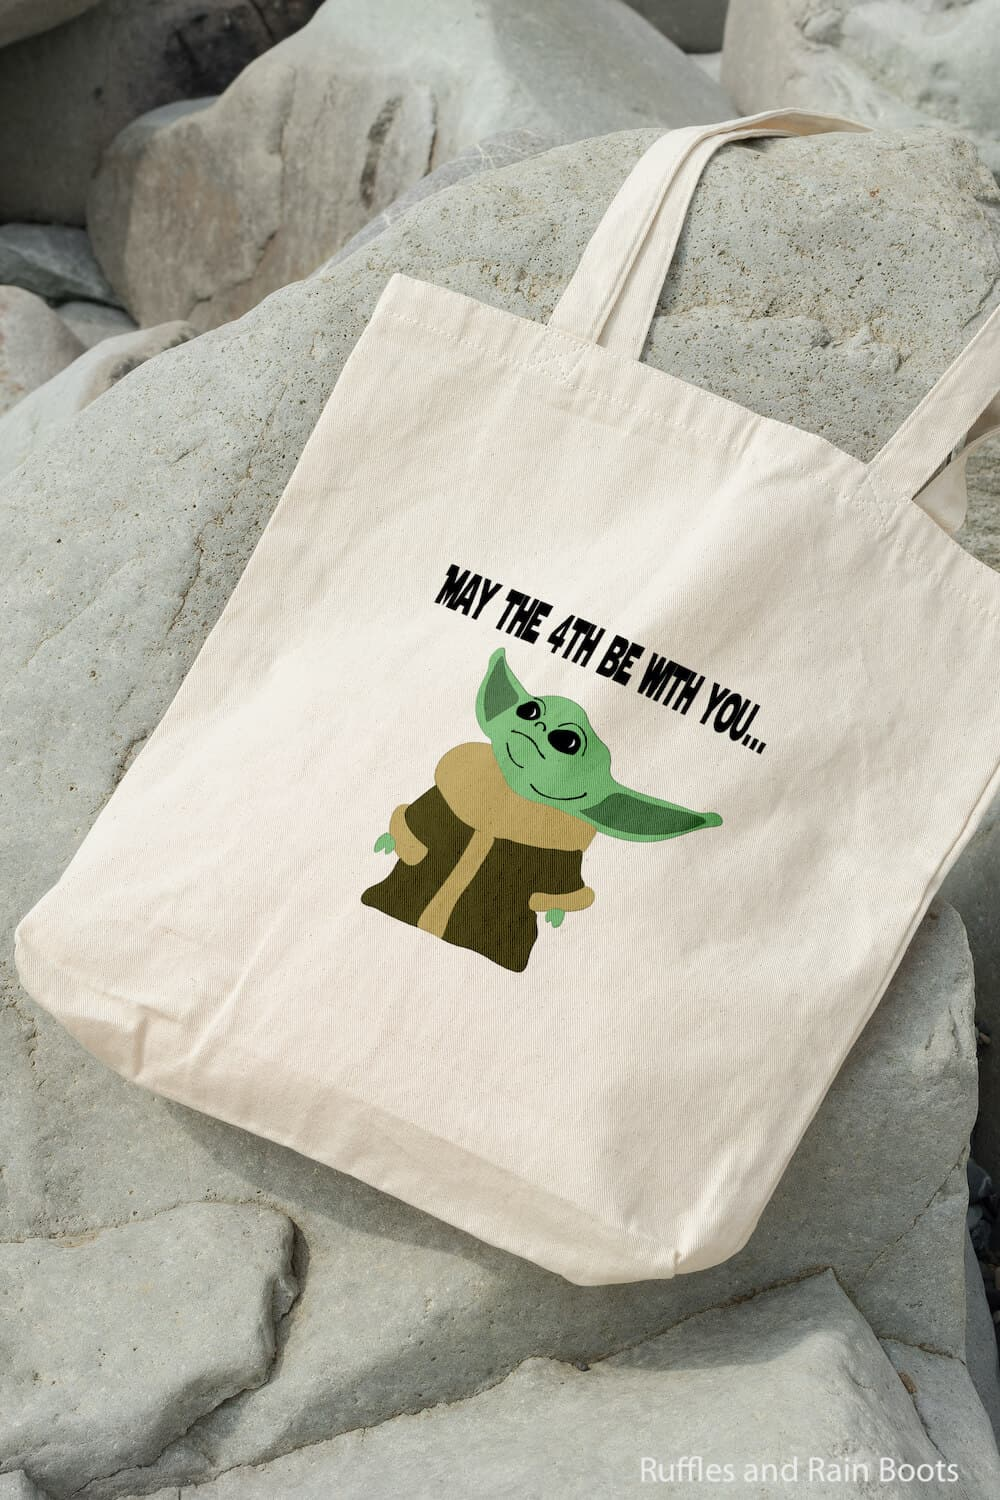 baby yoda svg file for cricut or silhouette on a canvas bag on rocks